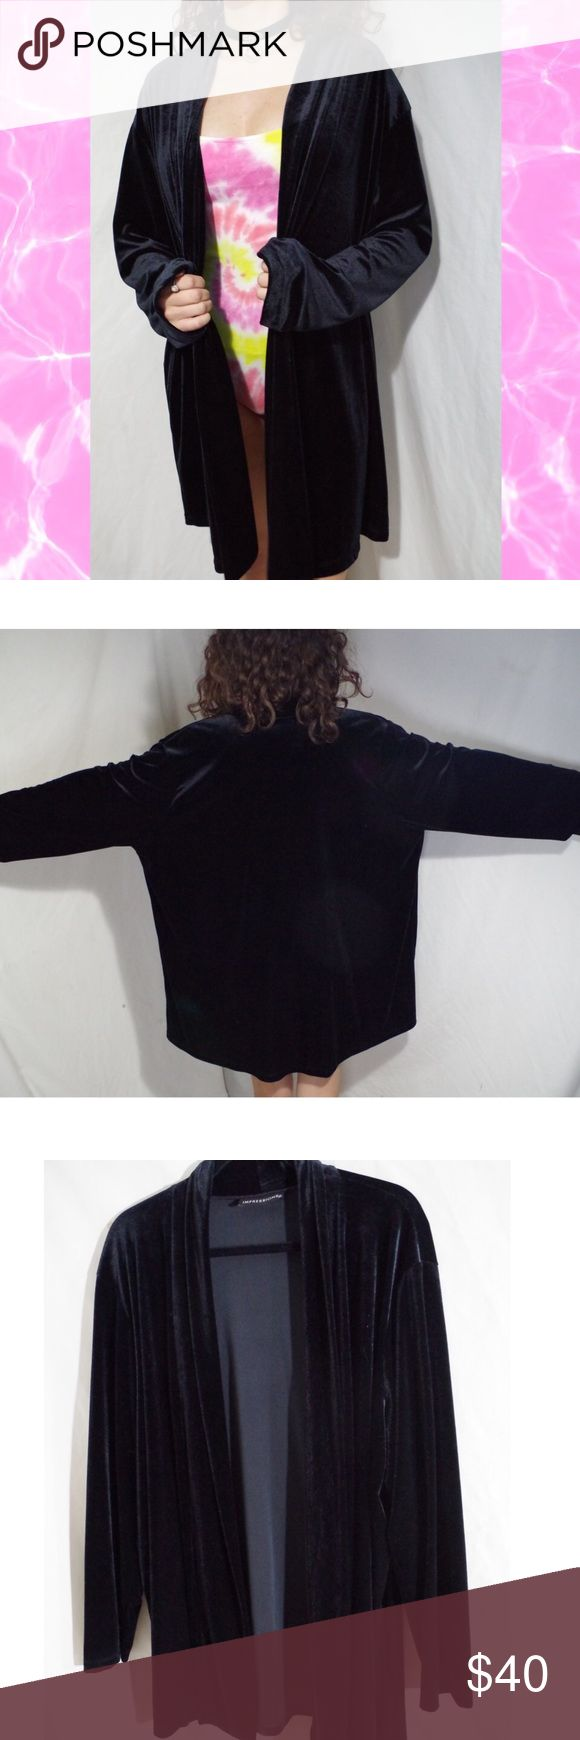 Black Velvet Kimono Robe Cardigan Impressions brand. Vintage. Good condition minimal wear no significant flaws. Black velvet fabric super comfortable and soft. Simple flowy black kimono robe cardigan give an edgy look to any outfit! One size fits most. NOT UNIF tagged for exposure! FREE SURPRISE GIFT WITH EVERY ORDER! SAME DAY SHIPPING, PRICE NEGOTIABLE, willing to sell elsewhere for $32! UNIF Sweaters Cardigans